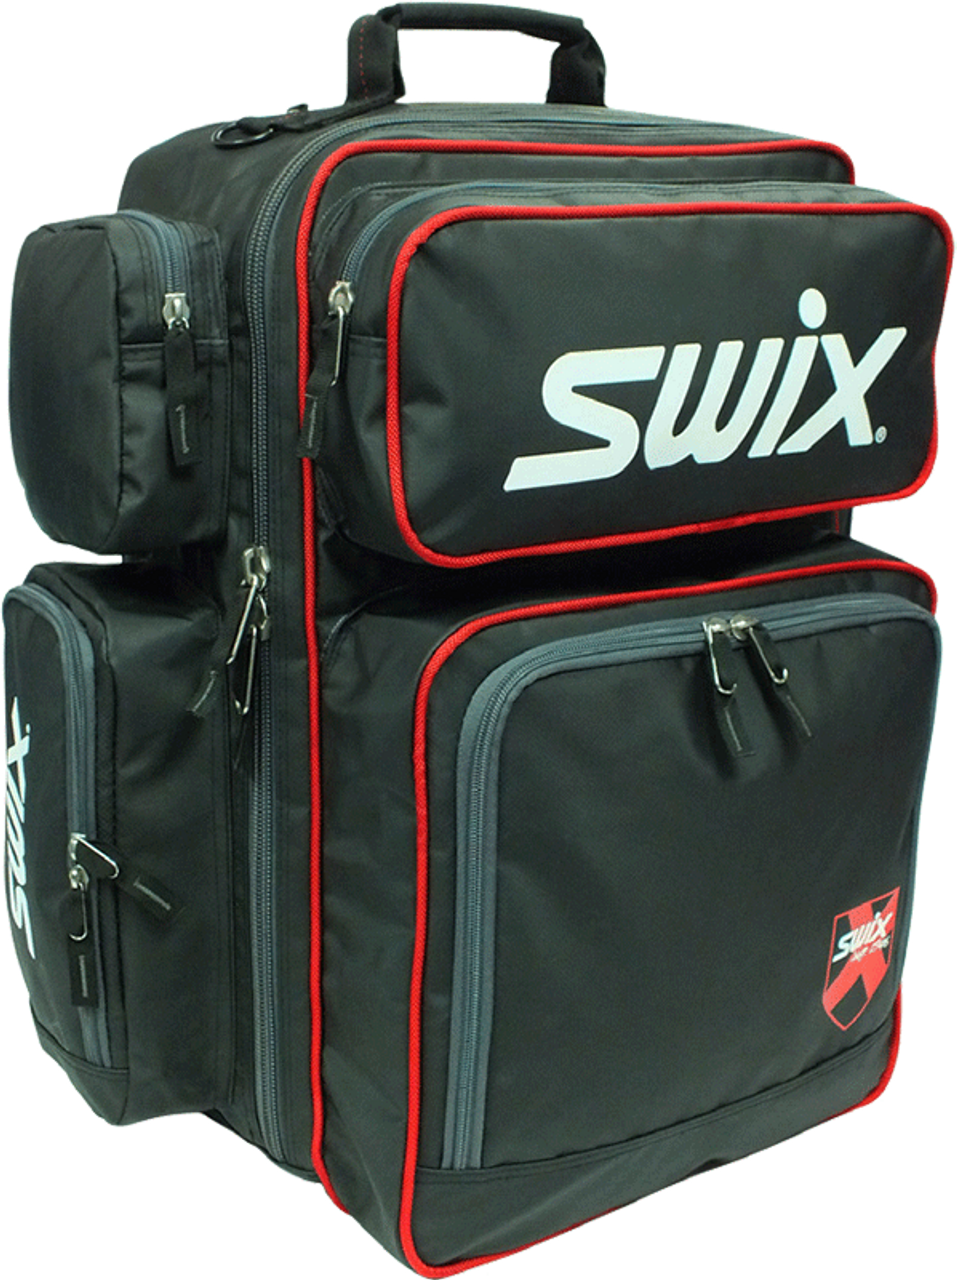 6bf0ea9130 Swix Tech Pack - 70 Litres - Gear West Ski and Run